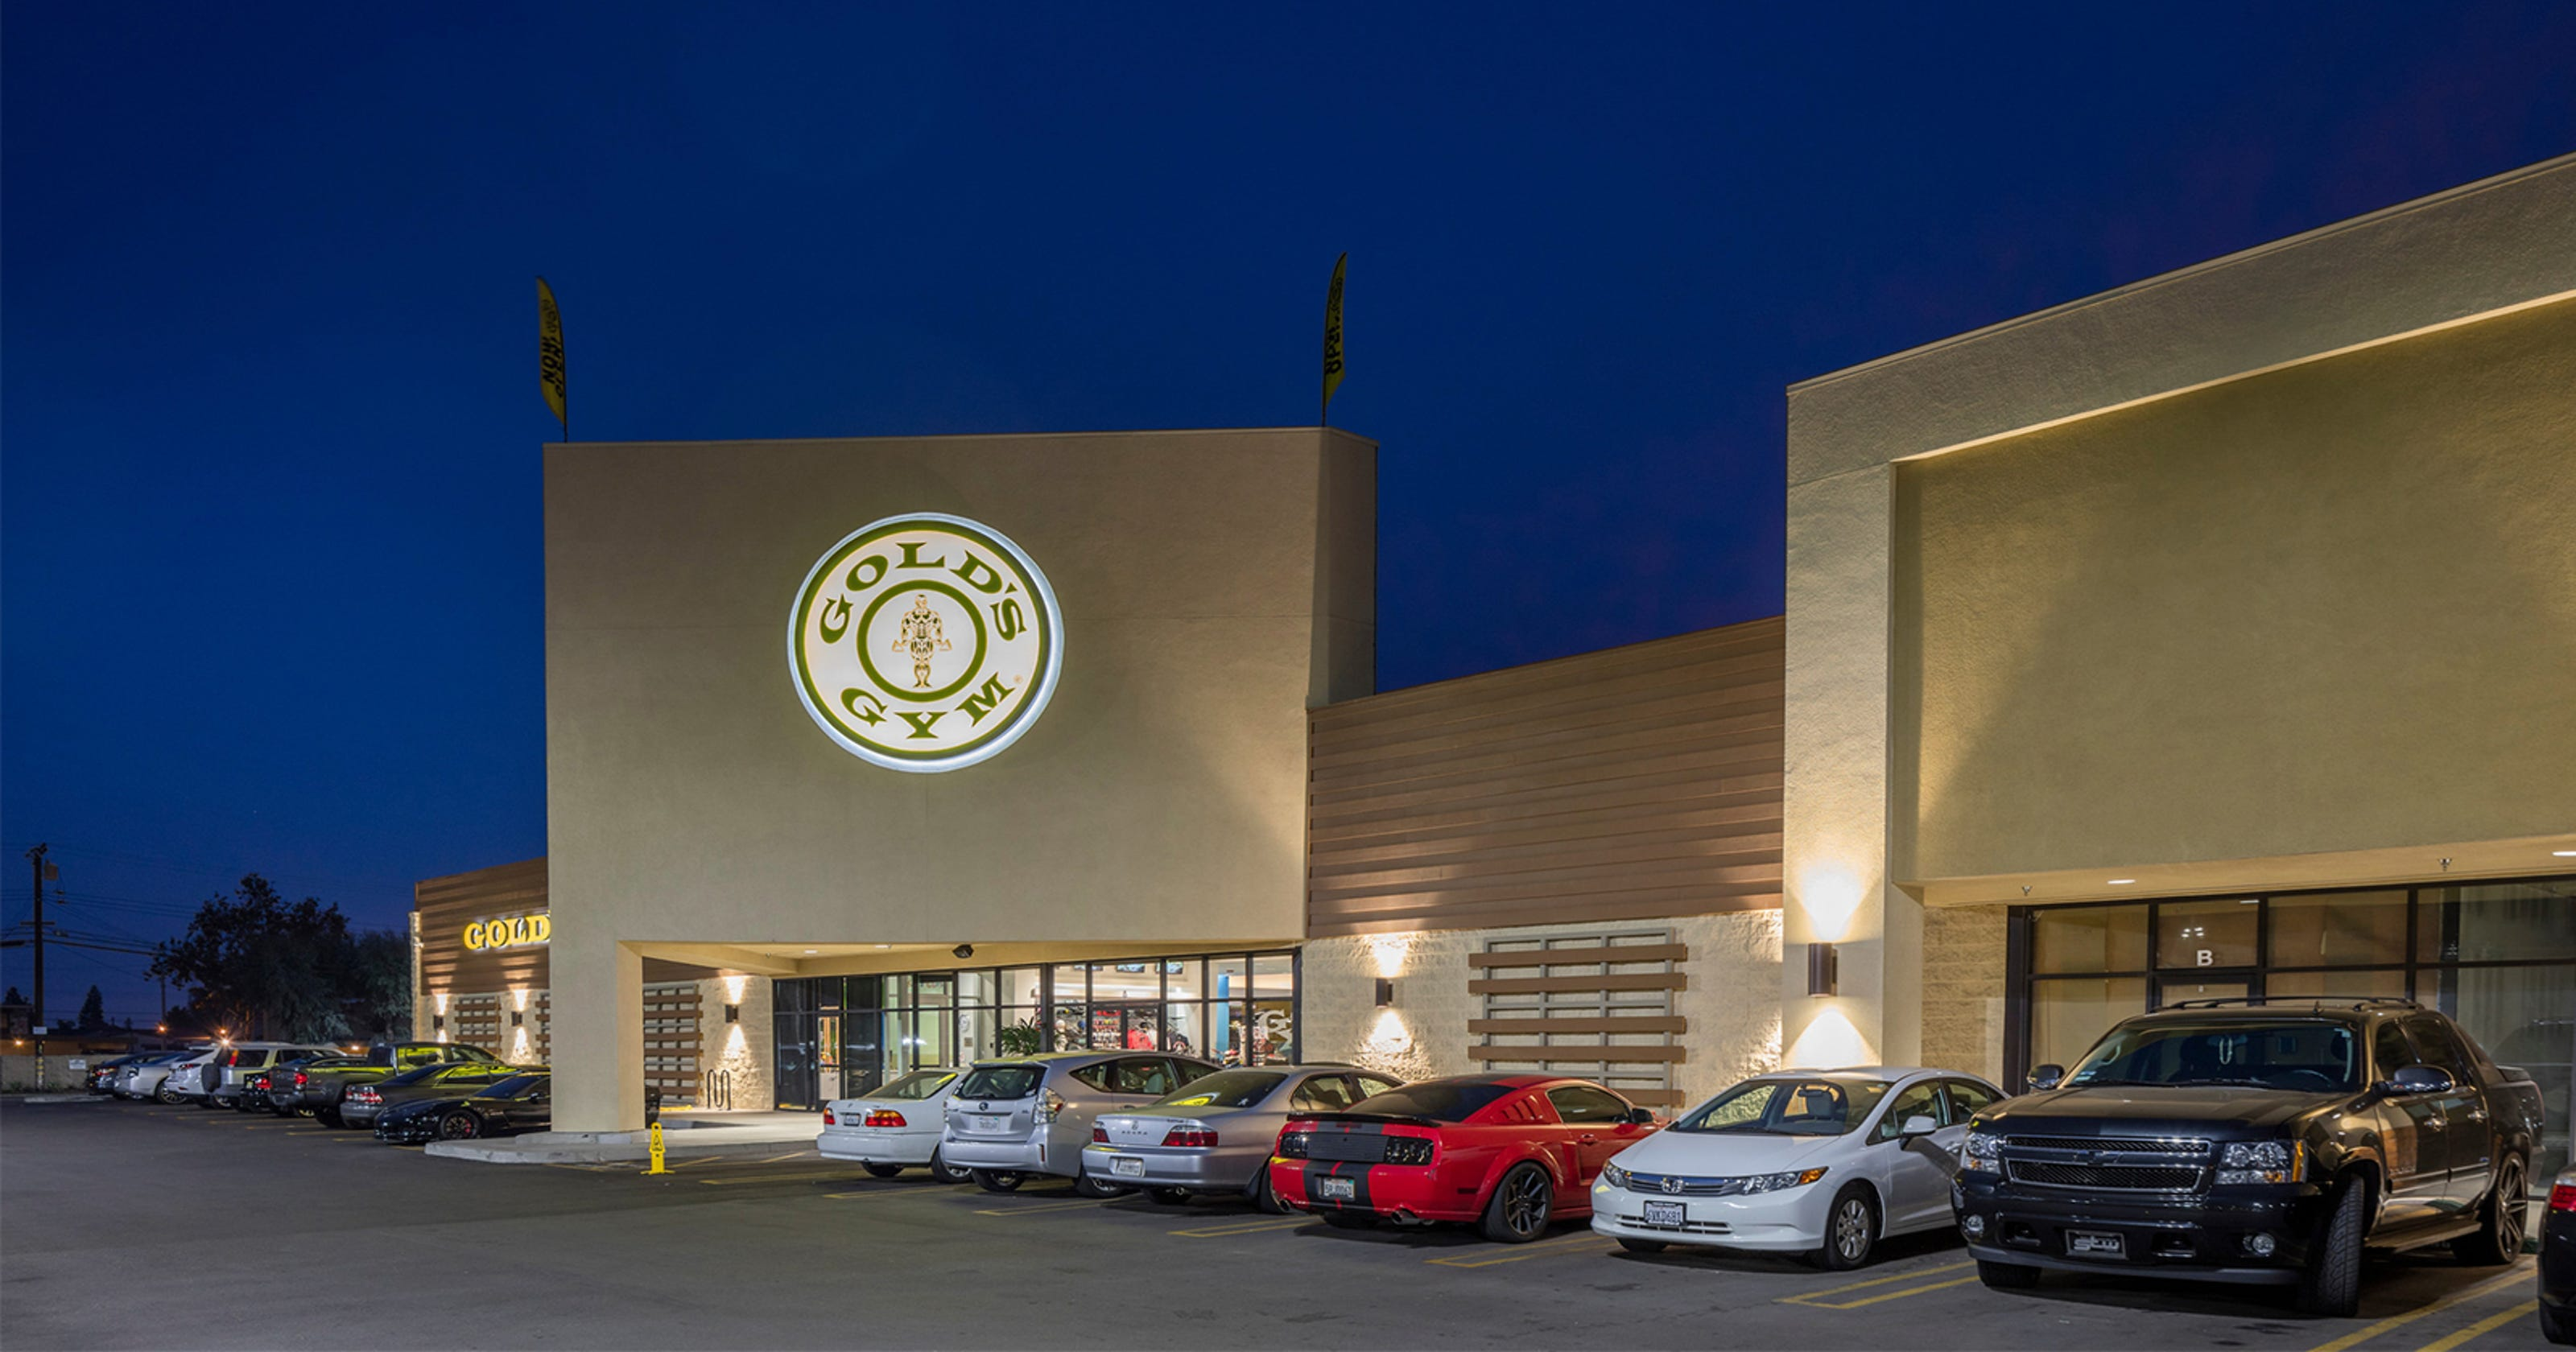 Brothers eye former oxnard market location to be next golds gym